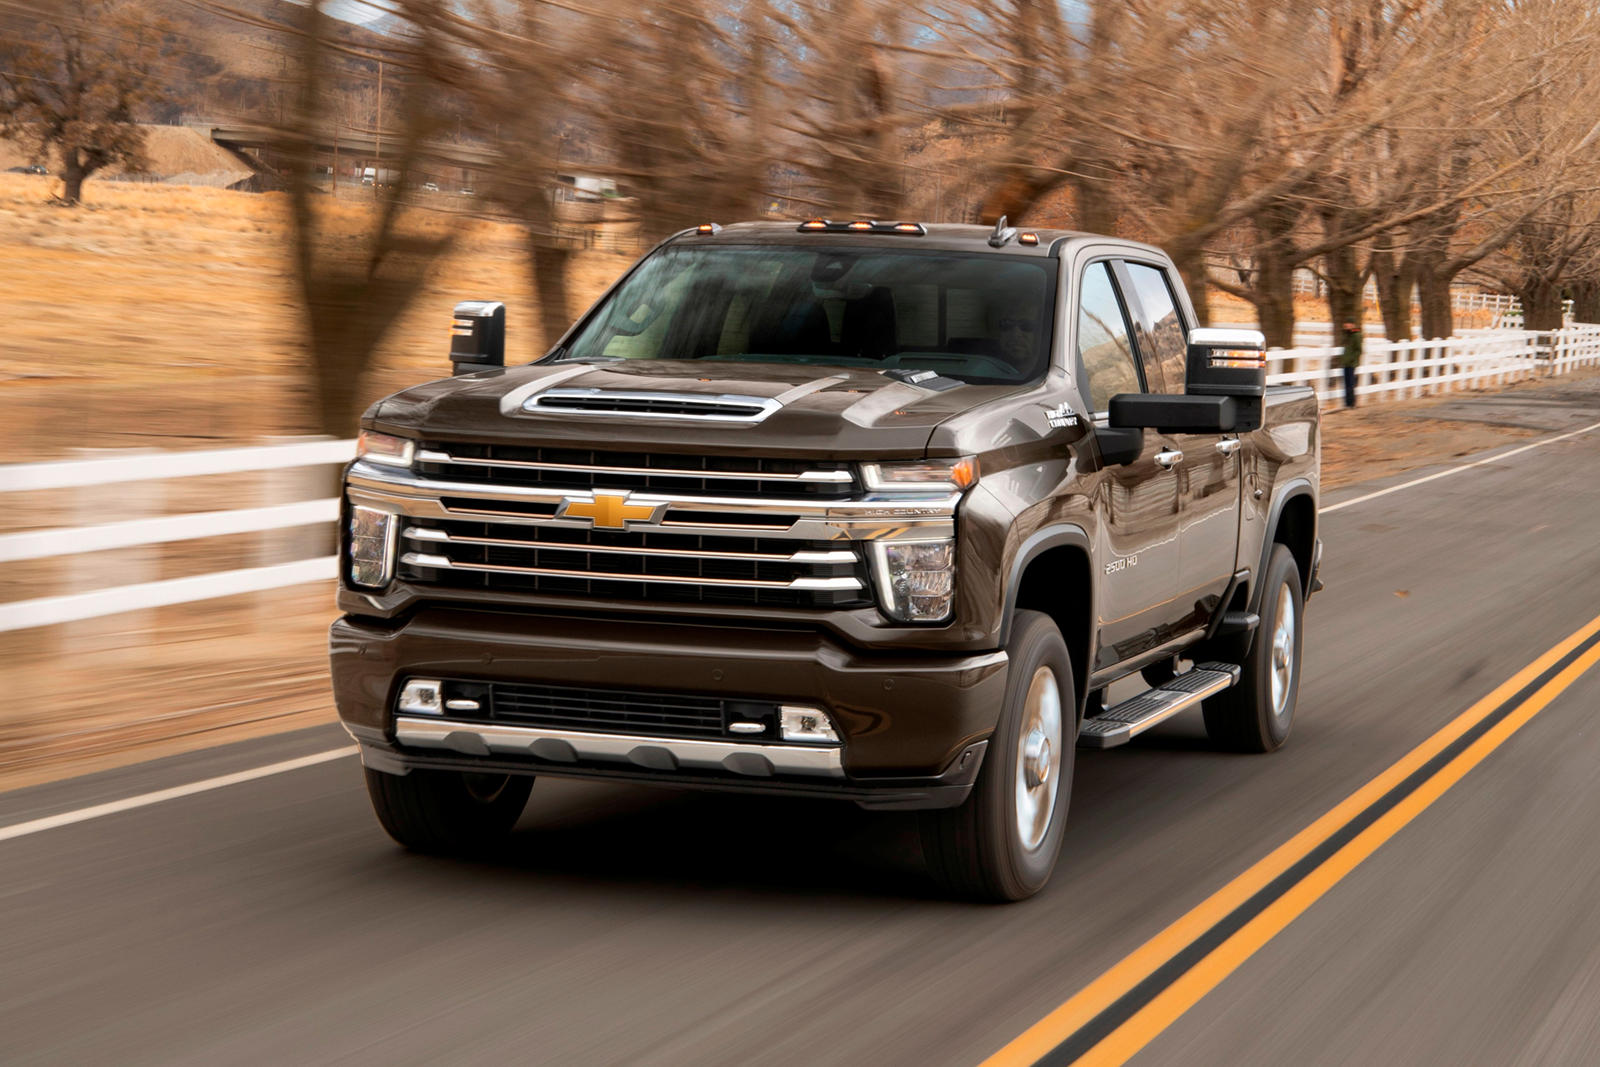 2021 chevrolet silverado hd coming with improved tech